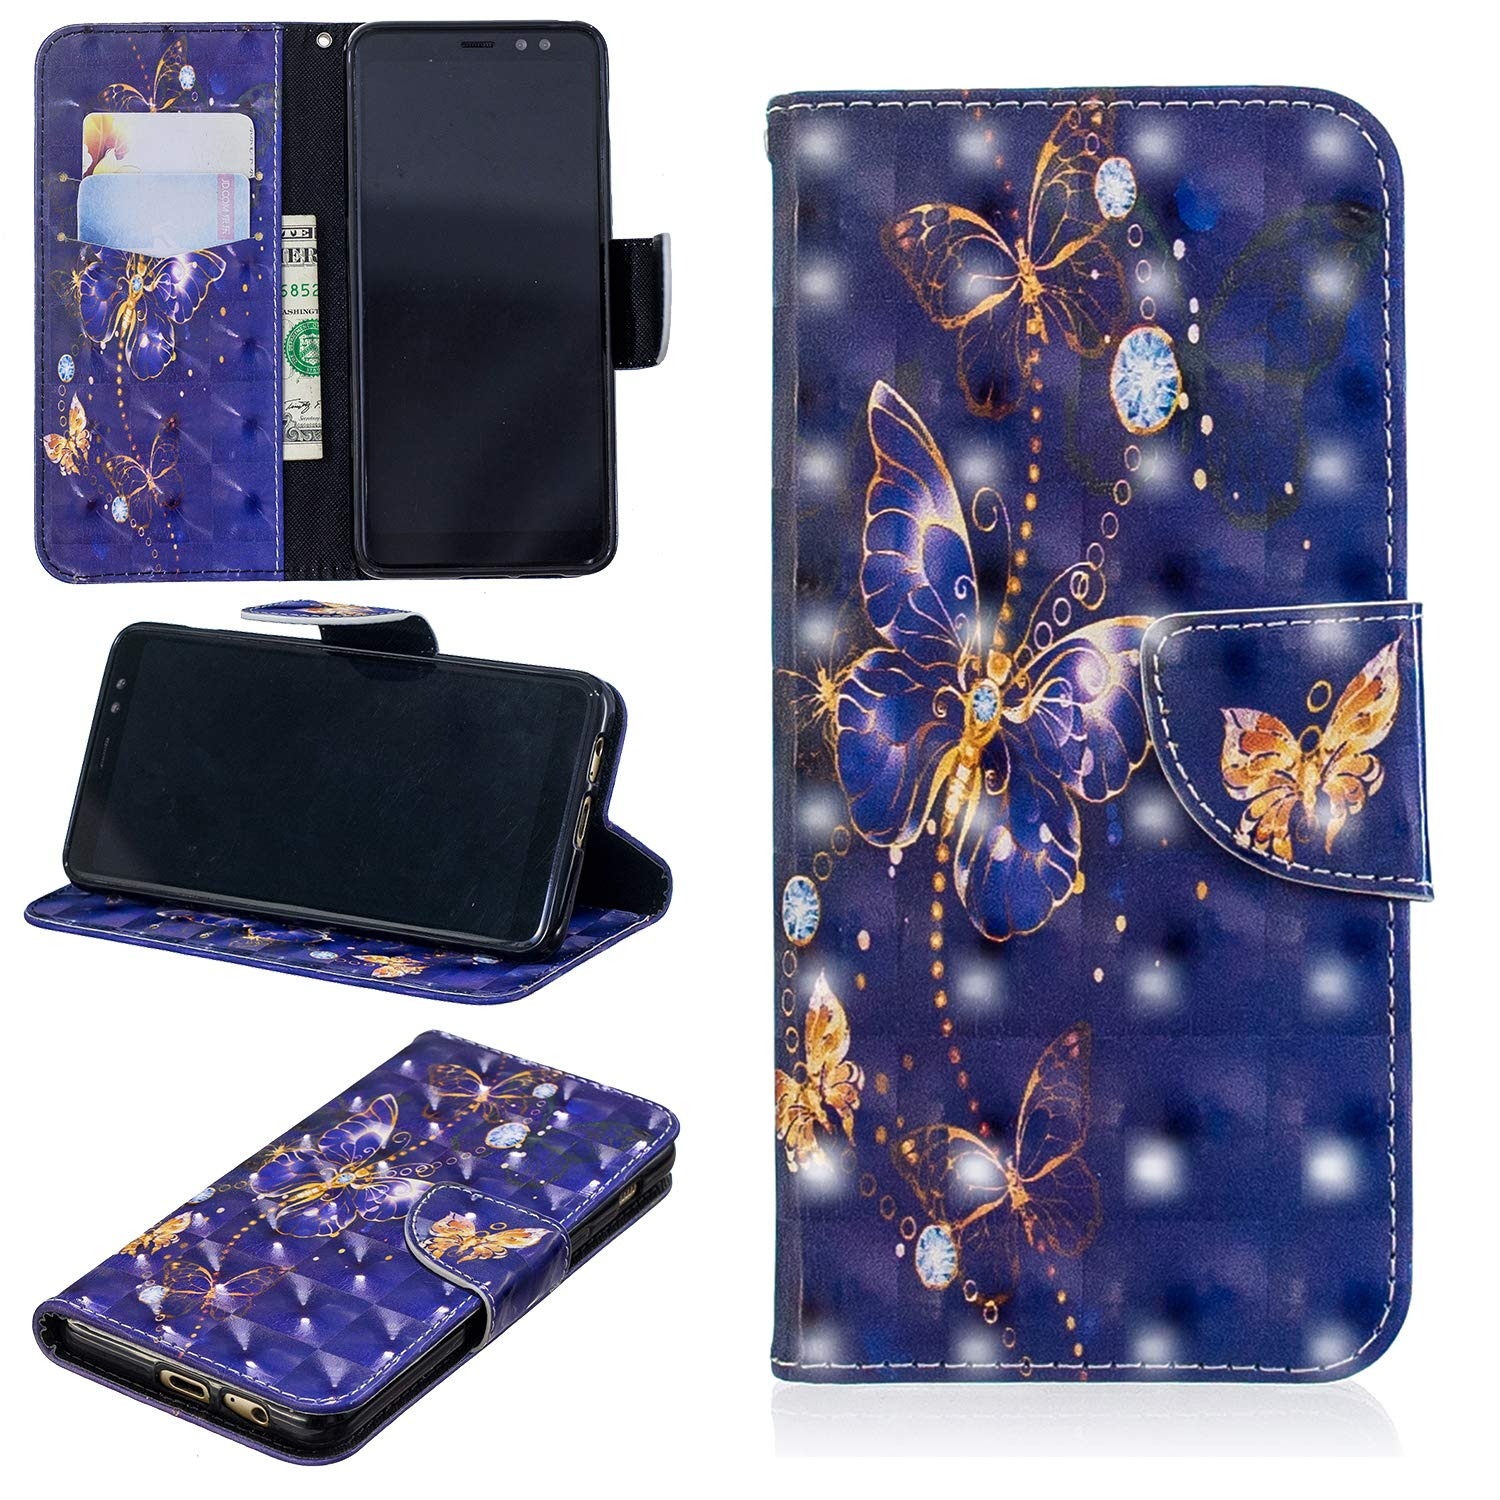 A530 Wallet Case with Screen Protector QFUN for Samsung Galaxy A8 2018 Glitter 3D Pattern Cube Magnetic Closure Kickstand Leather Phone Case with Card Holder Shockproof Protective Flip Cover